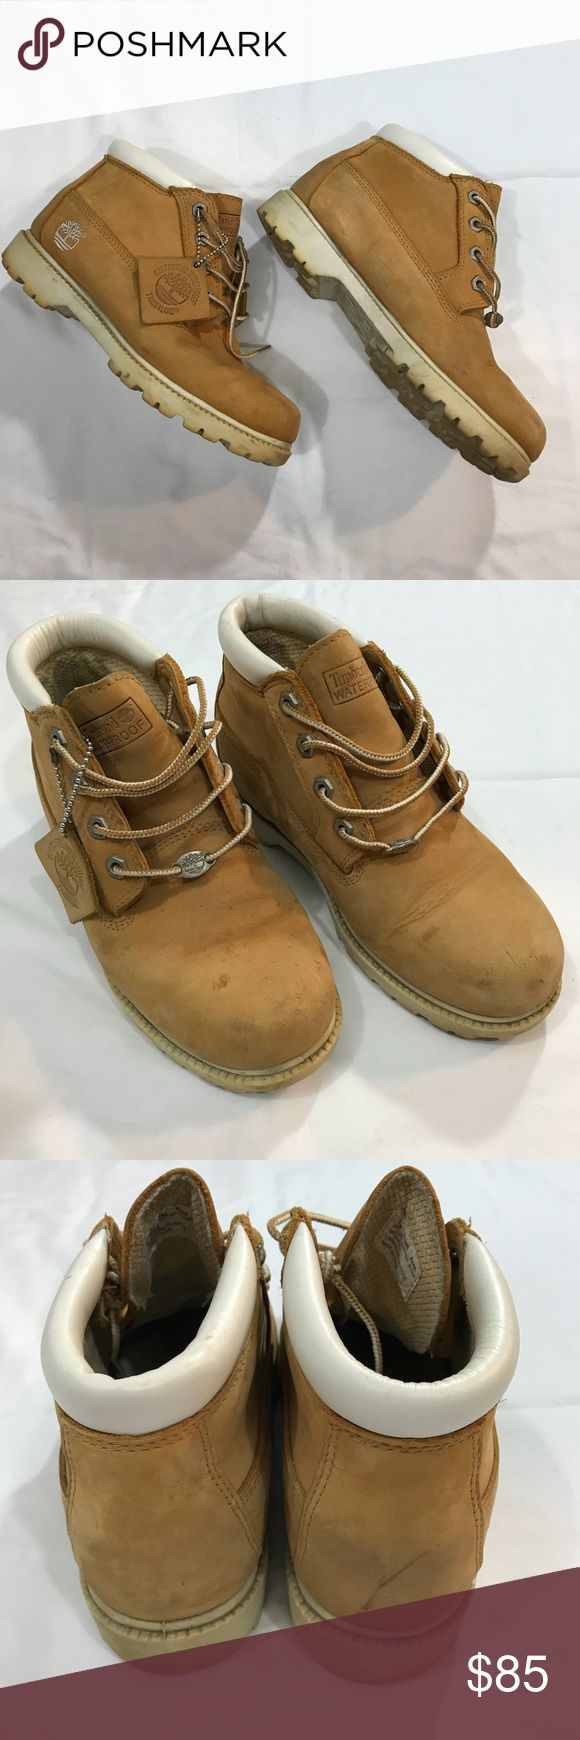 Timberland waterproof work boots Gently worn Timberland waterproof work boots. Some marks on the toe area and on heel but in good condition Timberland Shoes Lace Up Boots